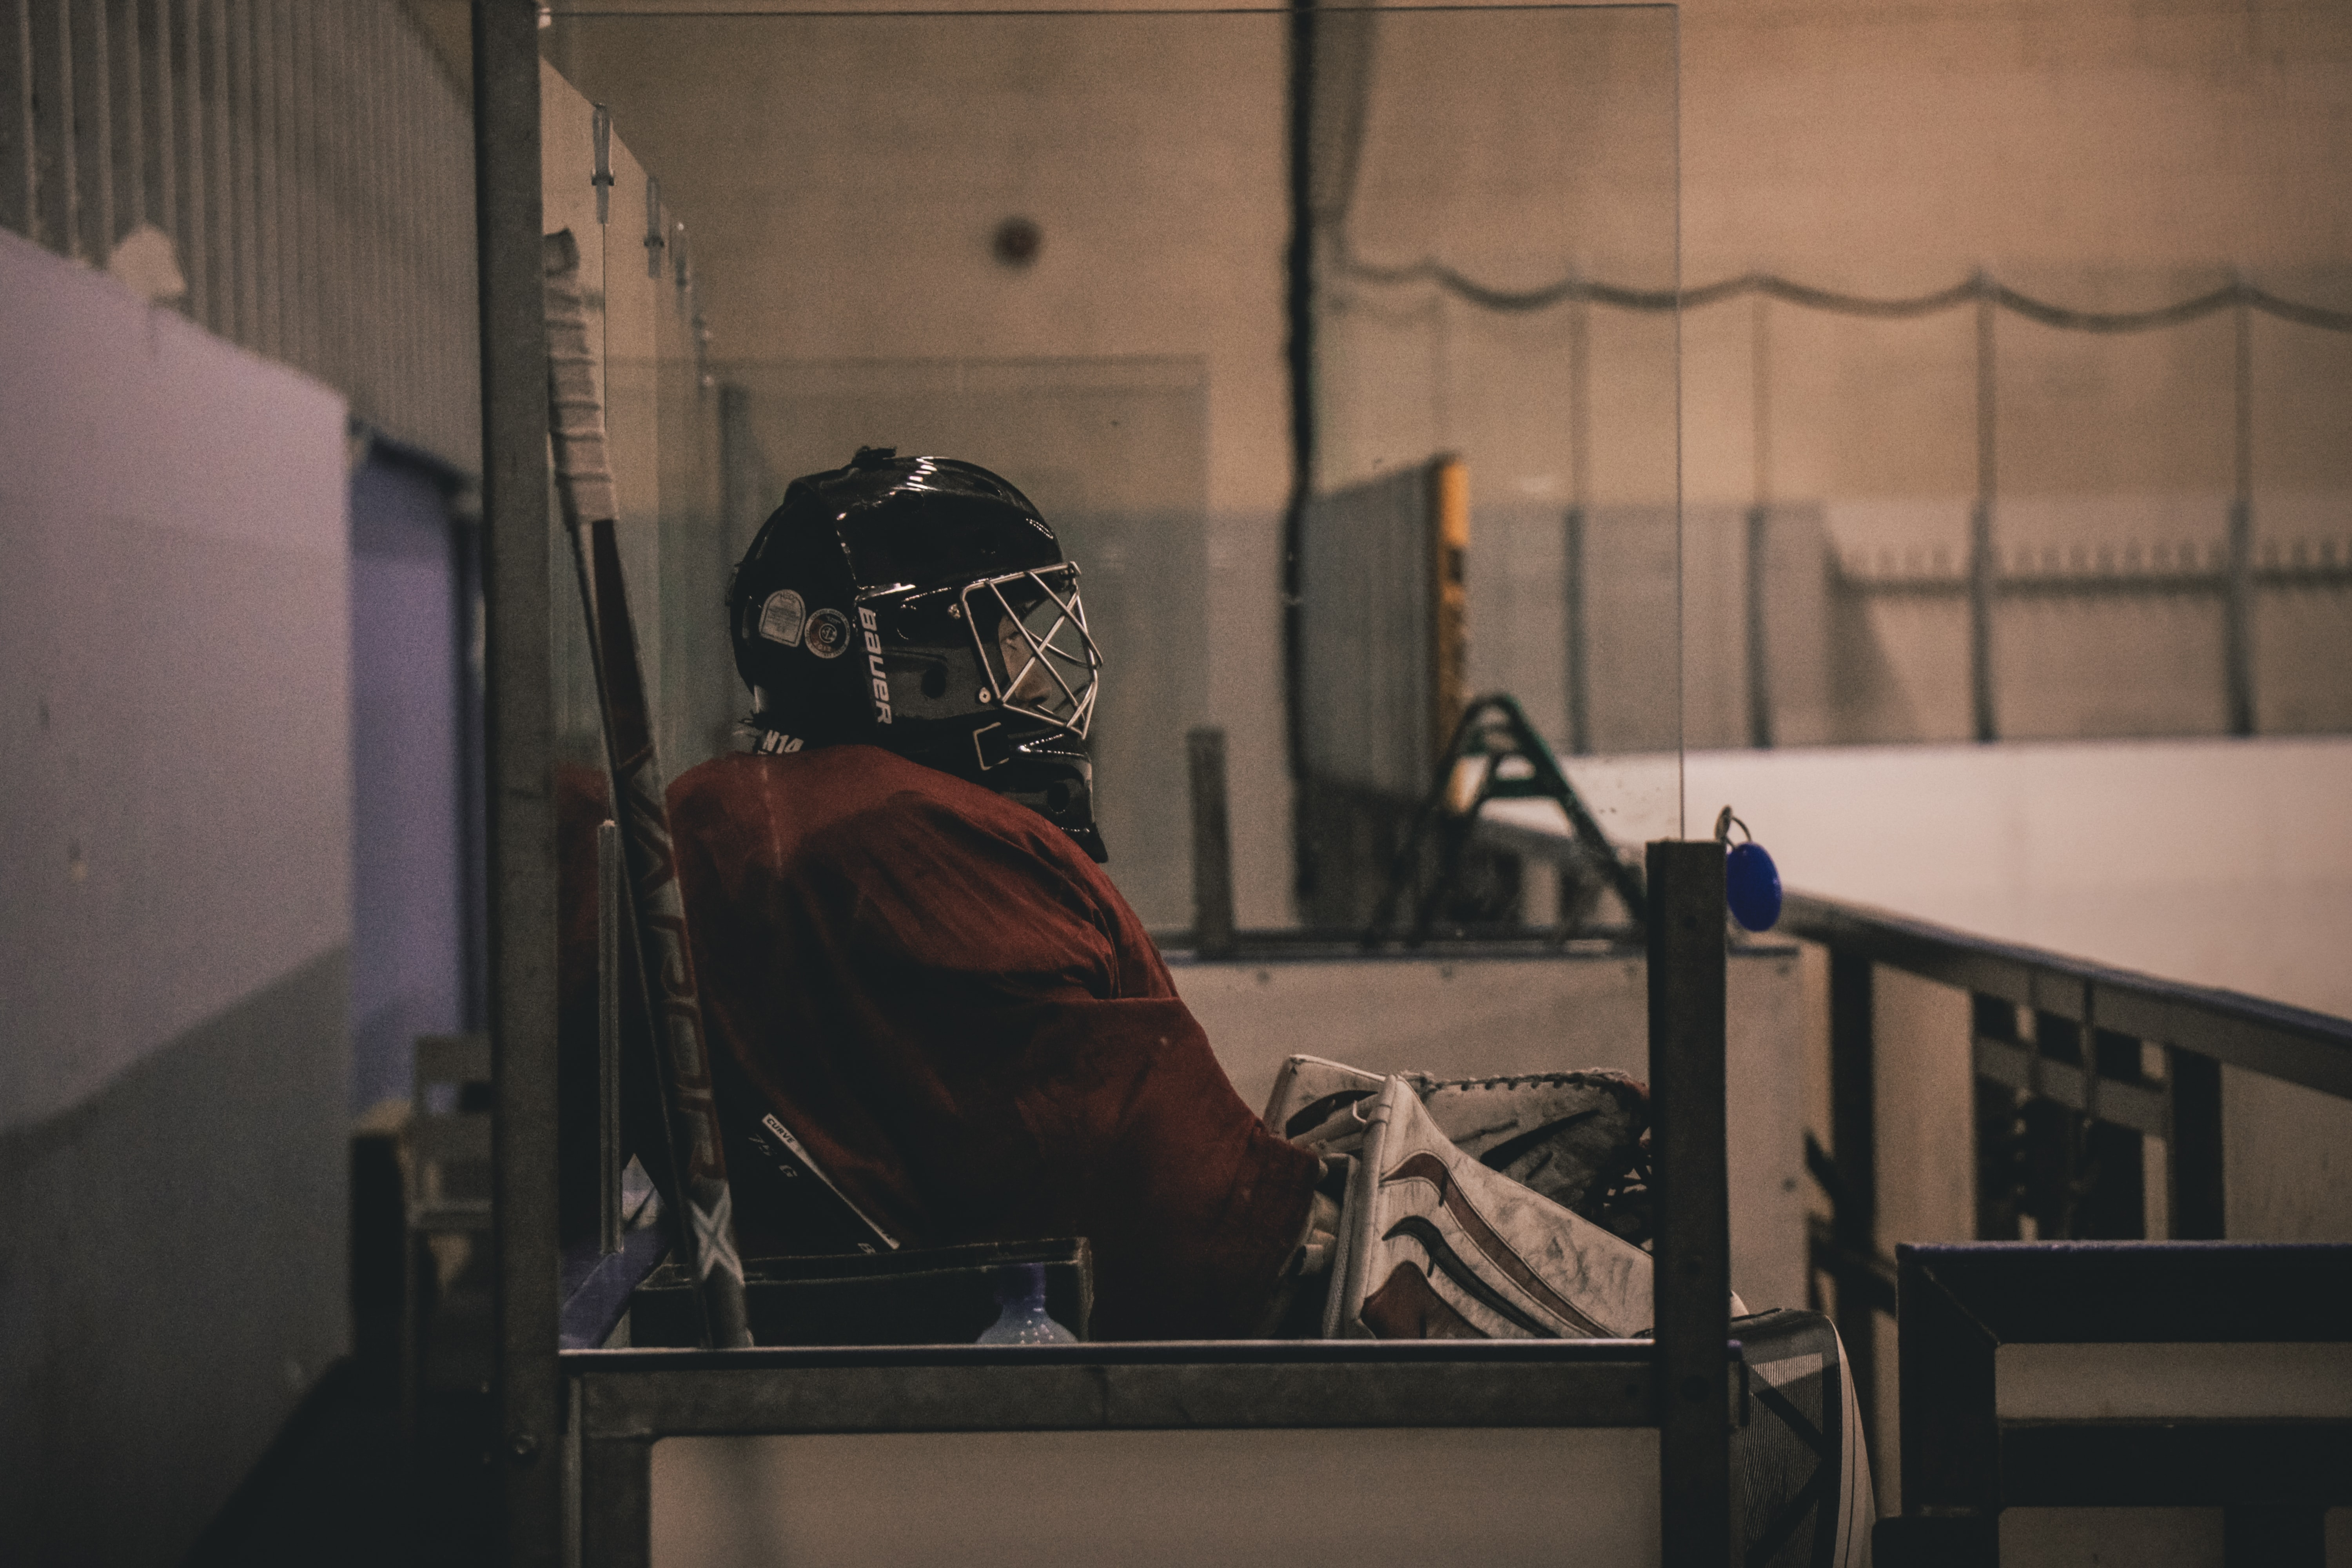 person sitting on bench wearing ice hockey jersey